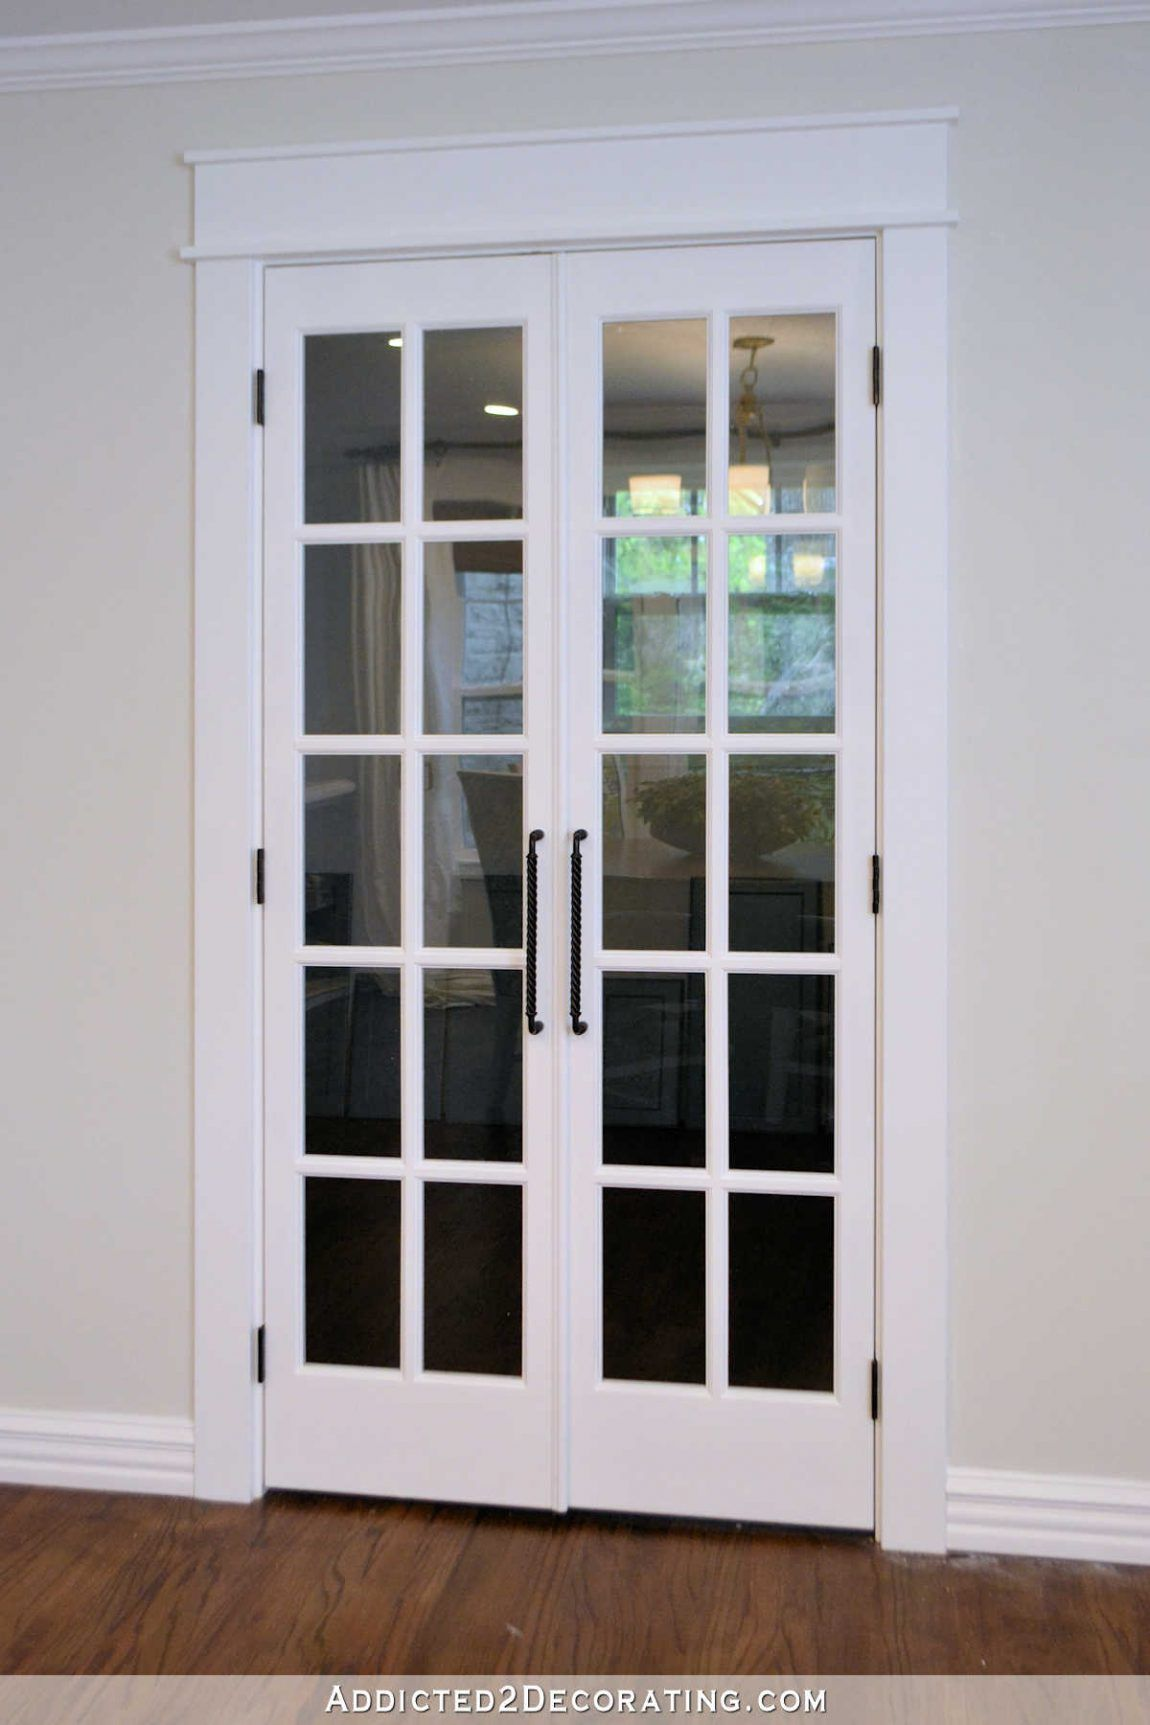 Pantry Doors Finished Bifold Closet Doors Installed As French Doors Addicted 2 Decorating In 2020 French Doors Interior Bifold French Doors Bifold Closet Doors